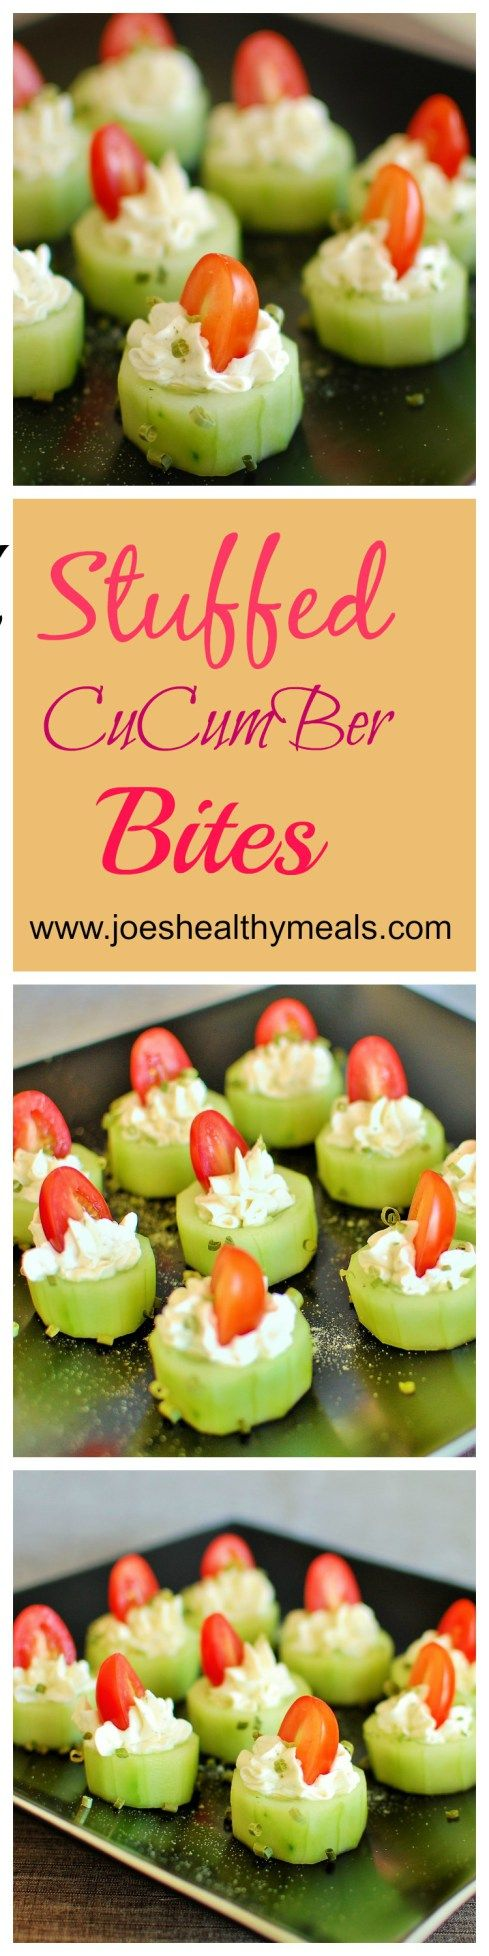 Stuffed cucumber bites | joeshealthymeals.com. Super easy. but impressive appetizer recipe. Everyone loves this! | joeshealthymeals.com